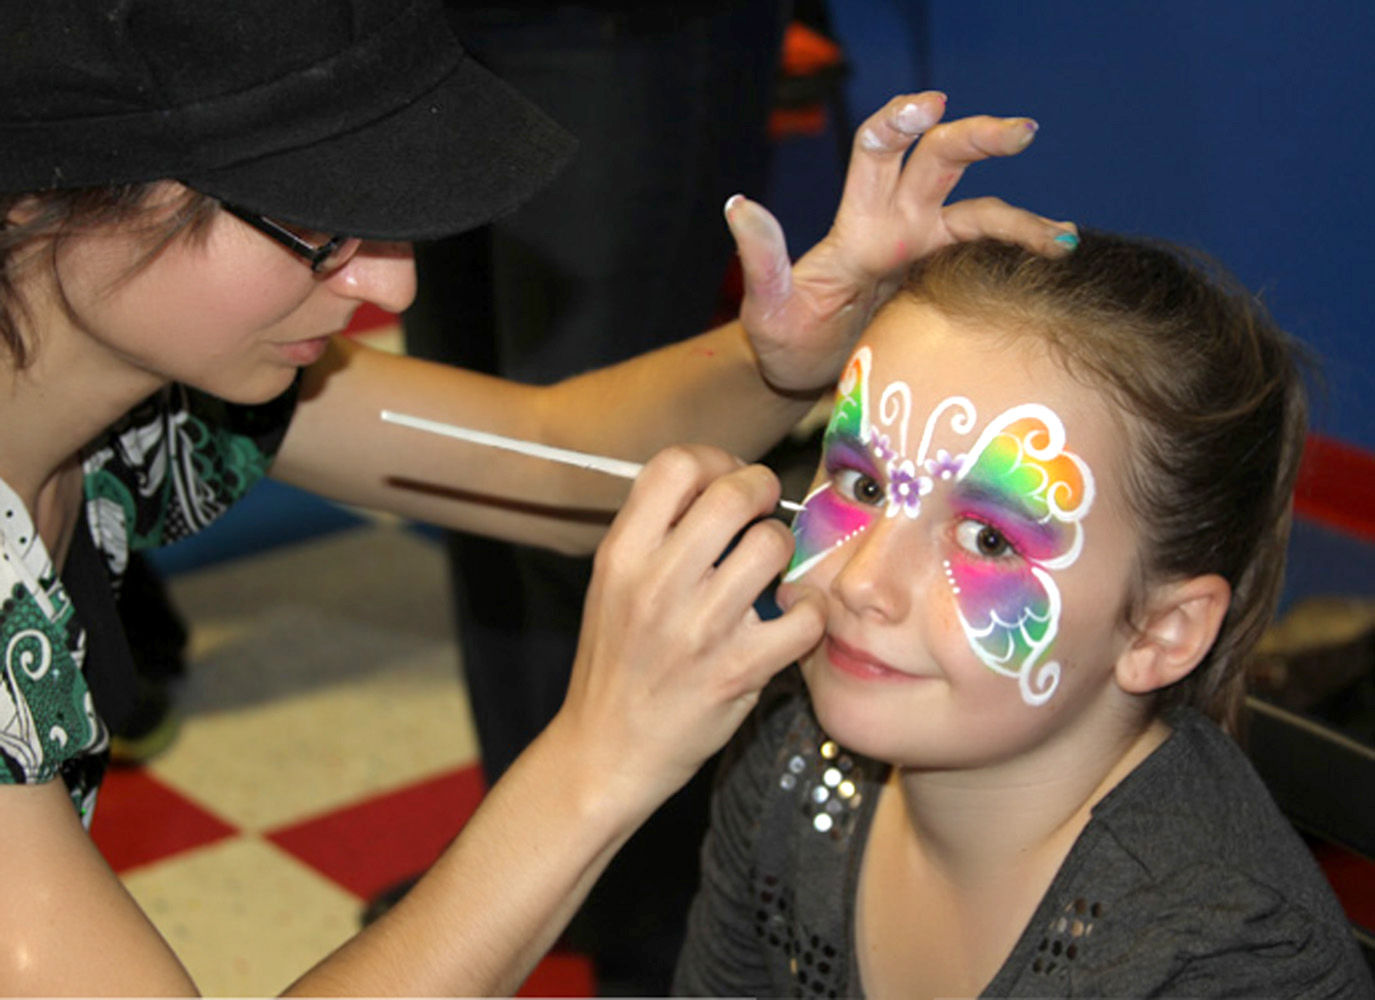 Blipey, Face Painter for Parties & Events, for Hire in Kansas City ...